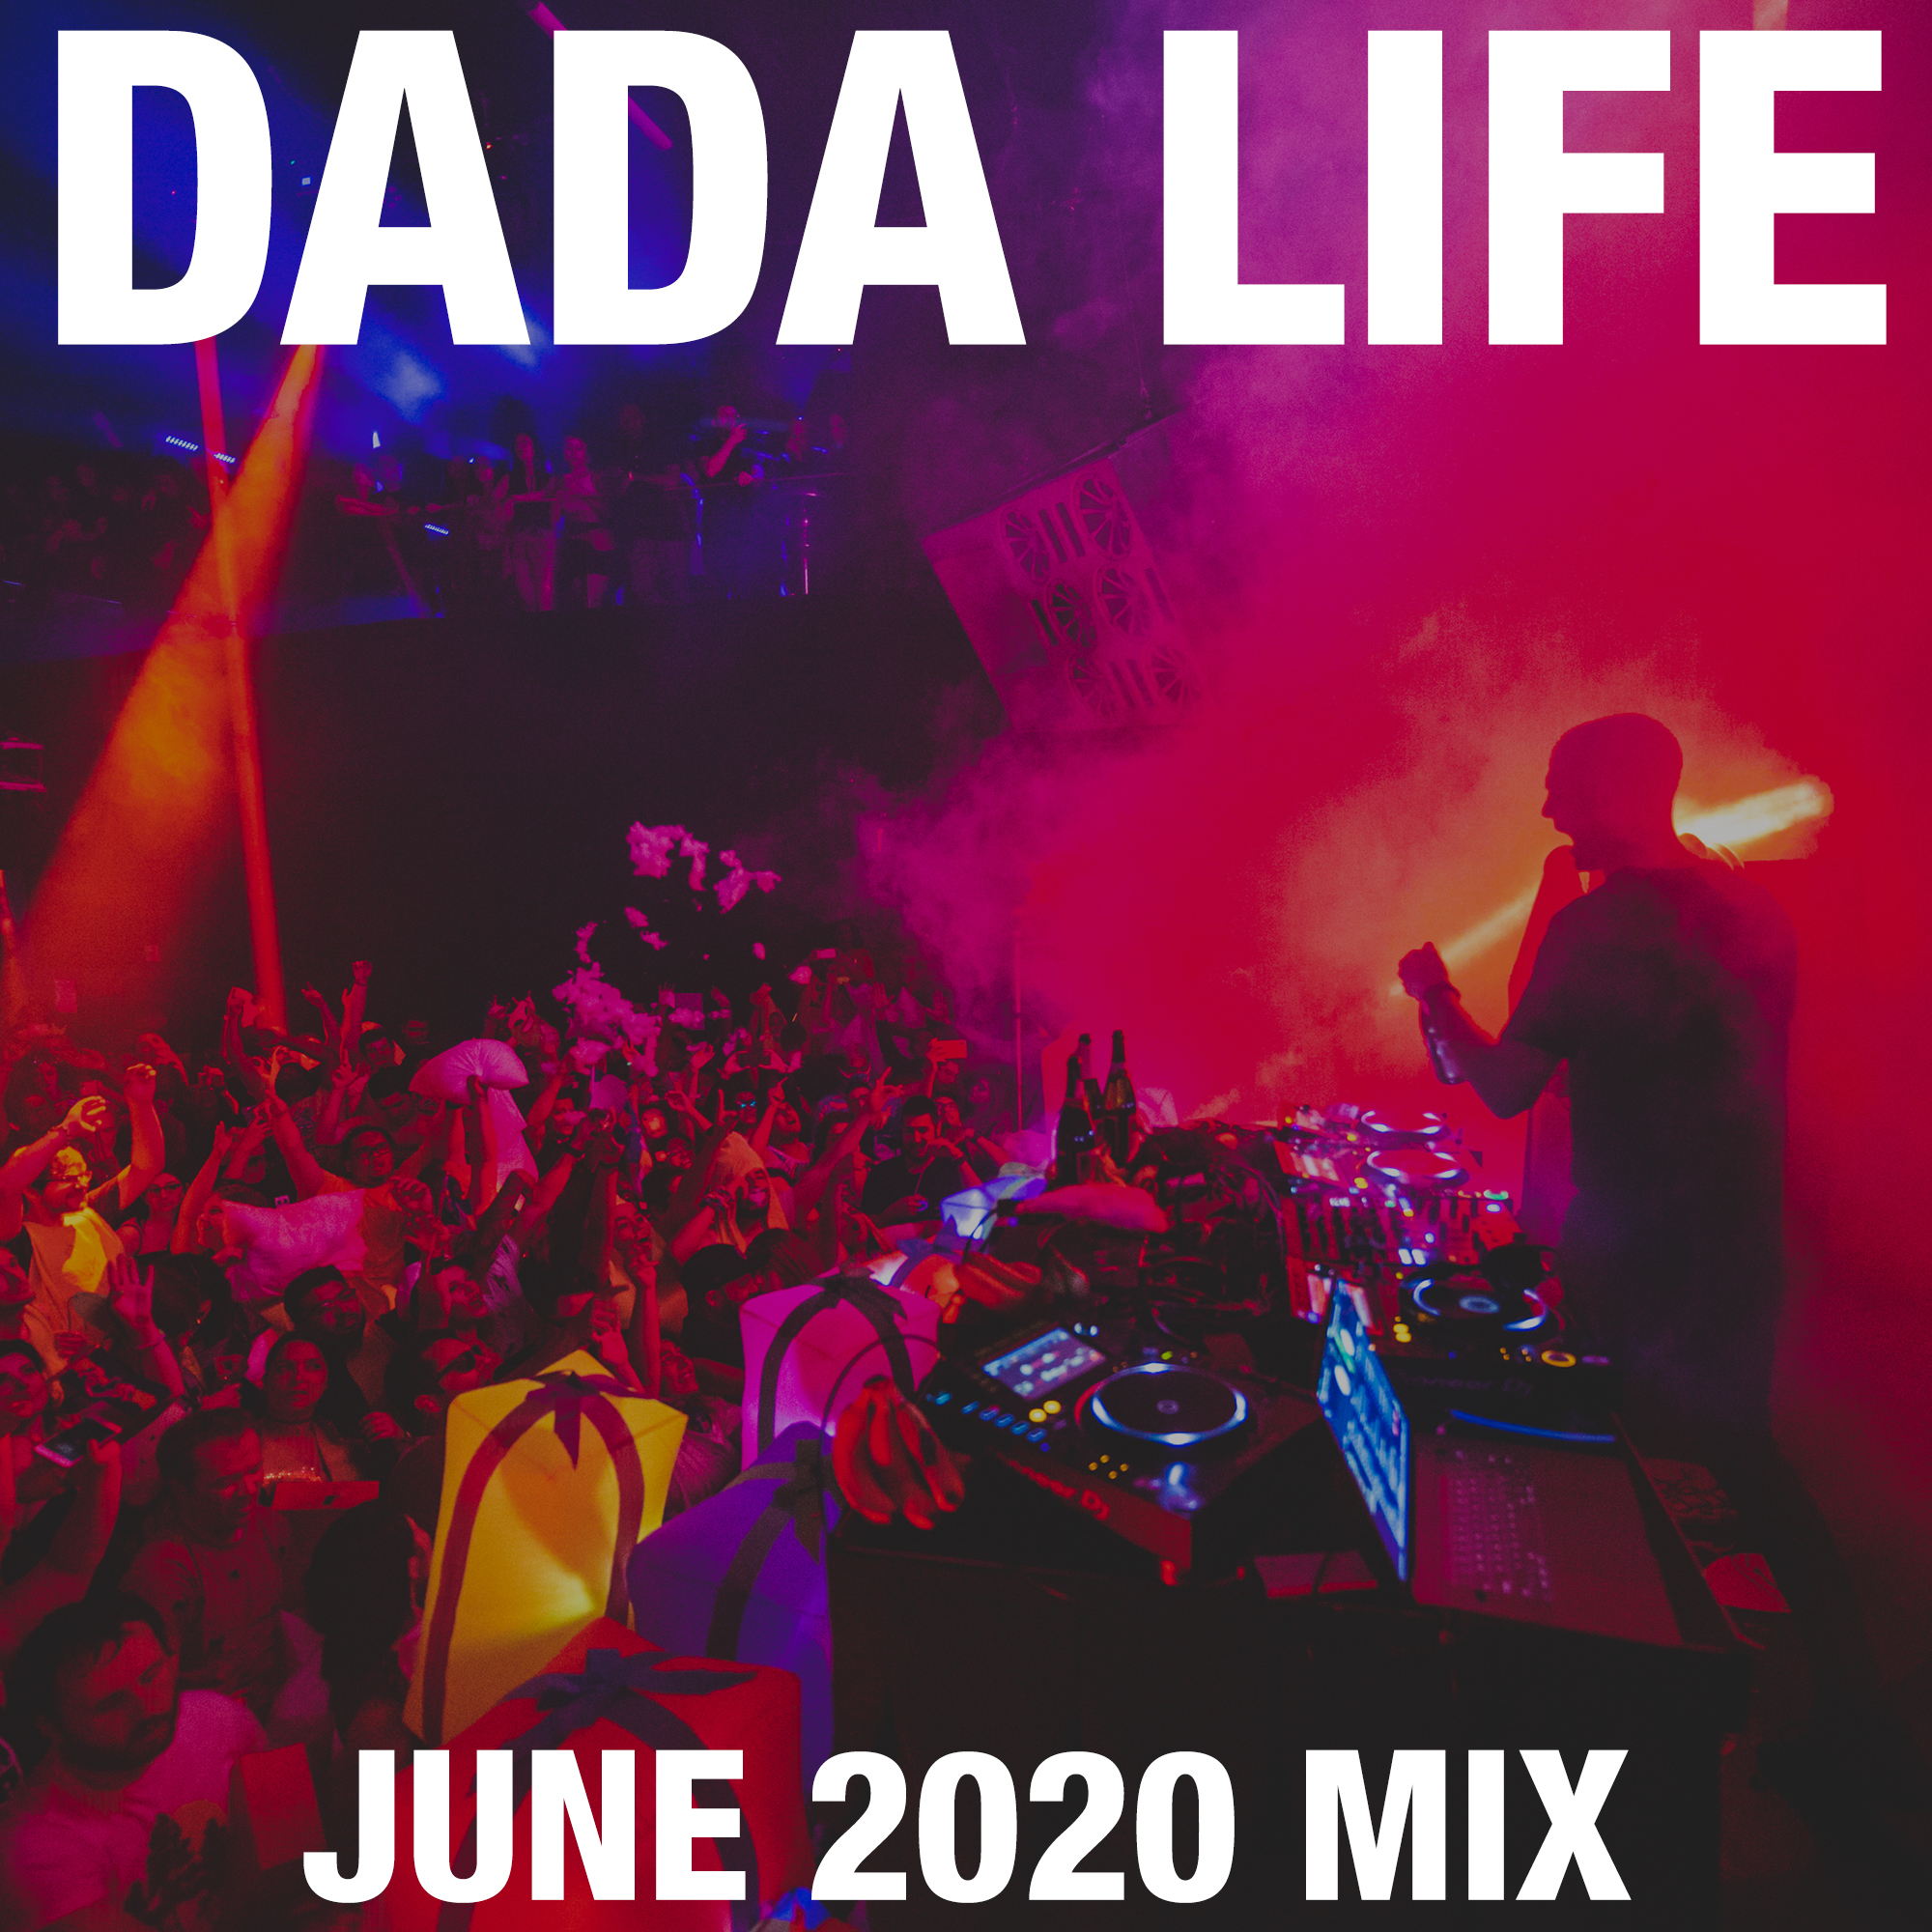 Dada Land June 2020 Mix show art